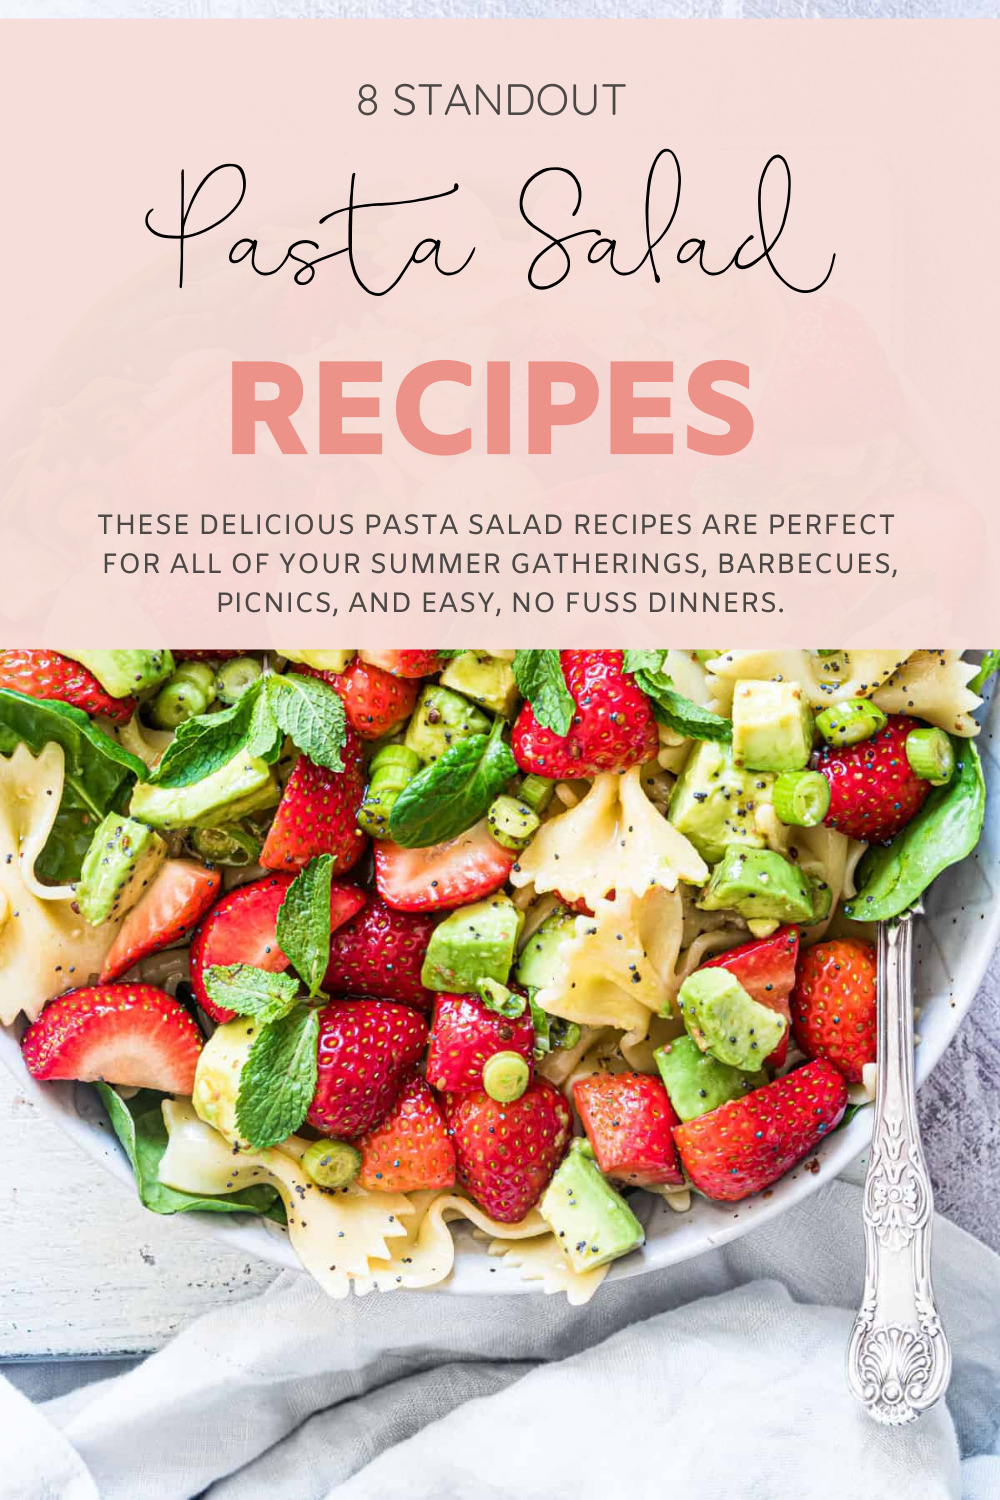 text and image of salad